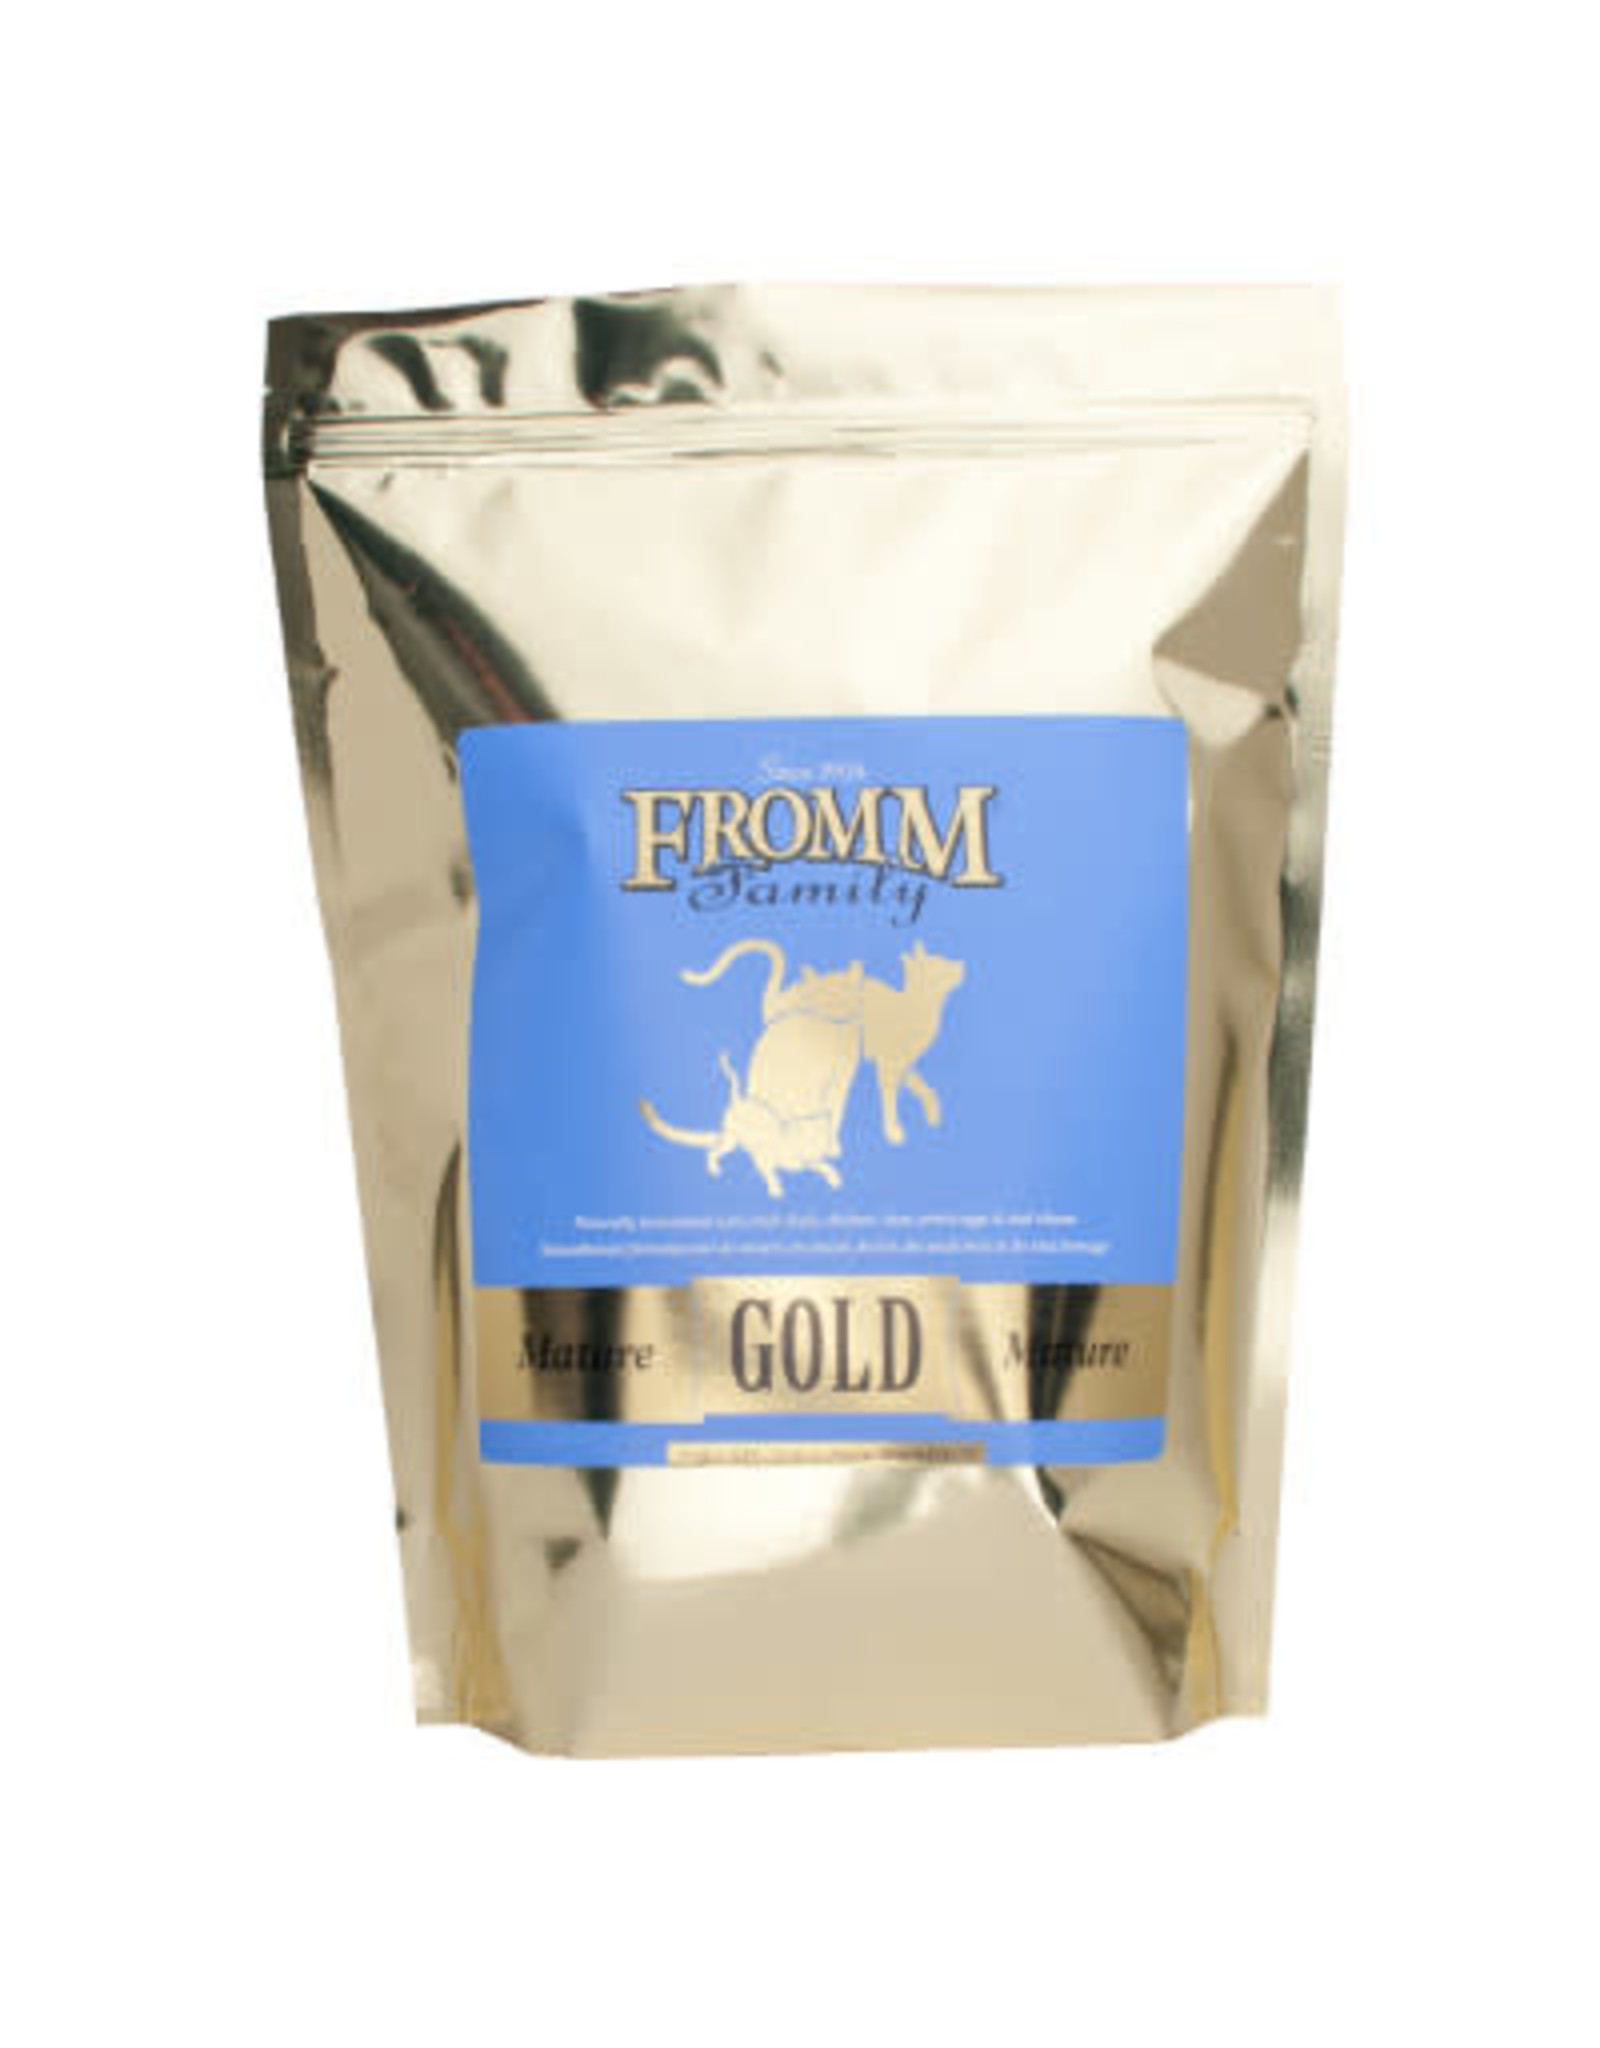 FROMM FAMILY FOODS LLC FROMM MATURE CAT GOLD, 5 LBS.